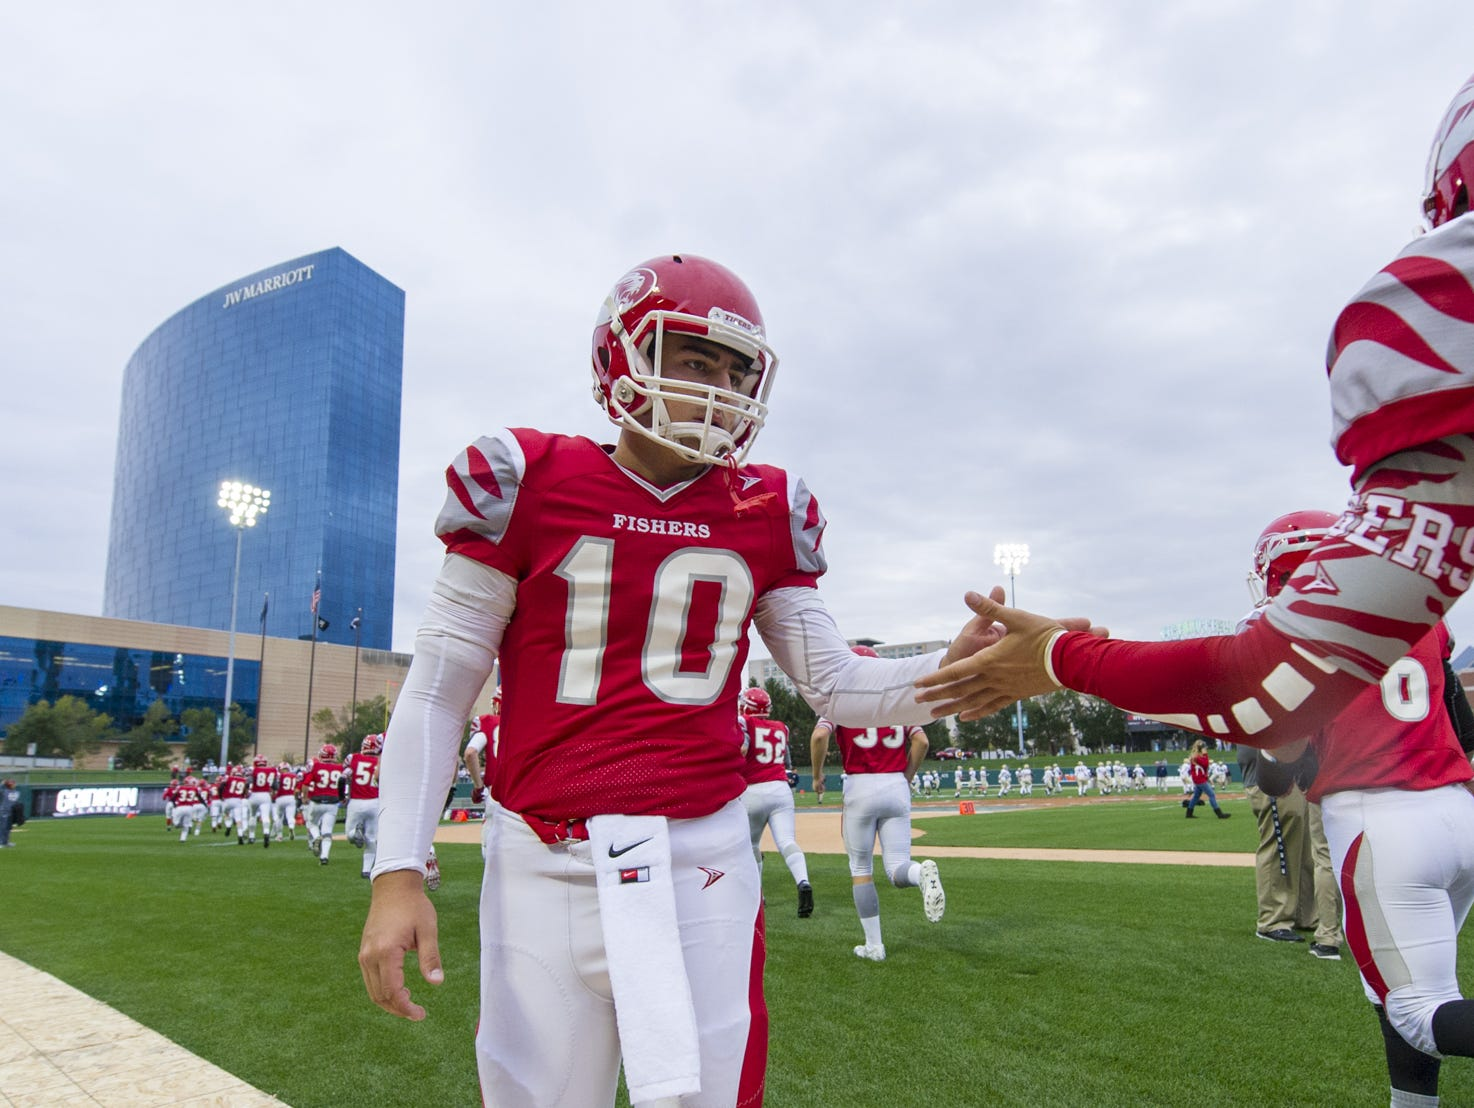 Fishers High School senior Zach Eaton (10) fires up his teammates as the head onto the field to warmup during pre-game activities of an IHSAA Varsity football game being held at Victory Field in Indianapolis, Friday, October 2, 2015.